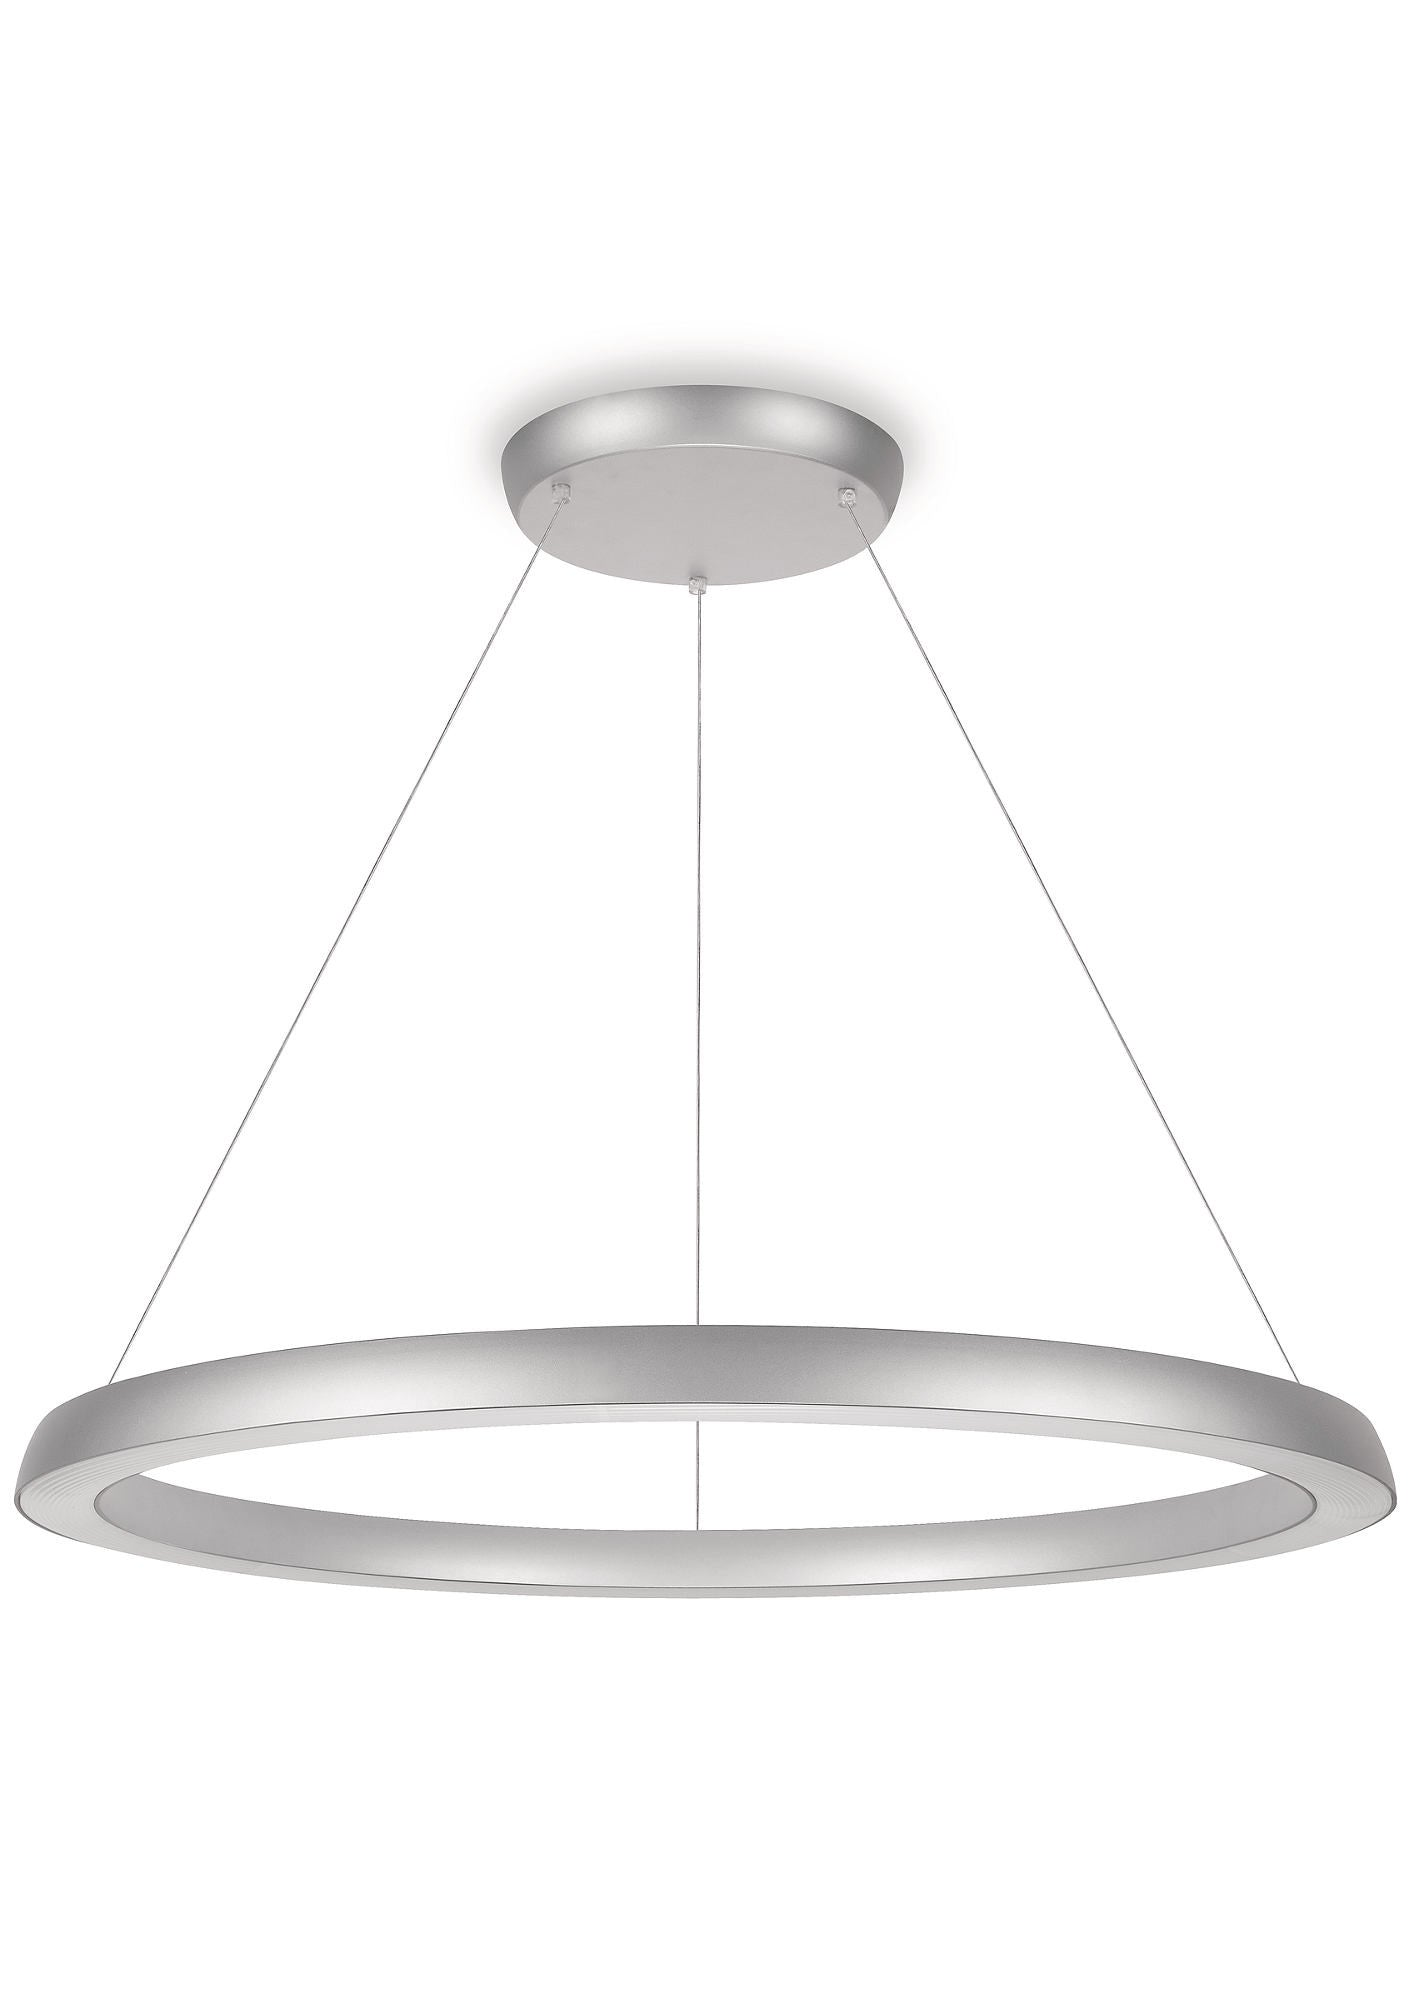 Philips myLiving LED Suspension Light (2800 Lumen/VariLume/Dimmable)